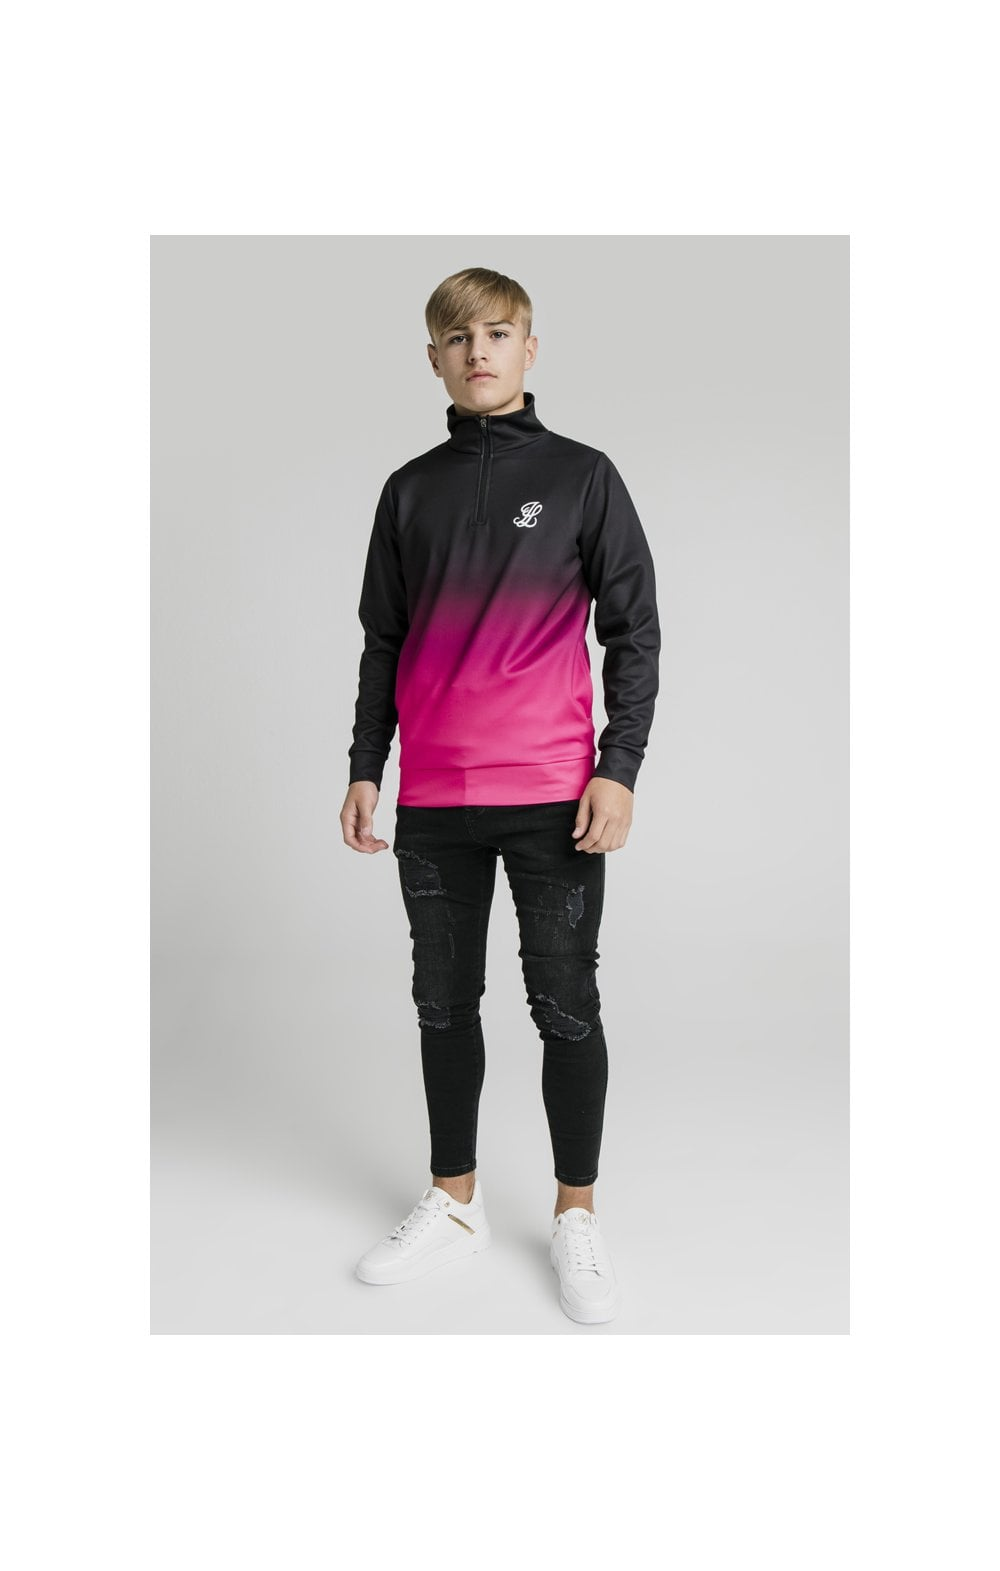 Illusive London Funnel Neck 1/4 Zip Hoodie - Black & Pink (2)